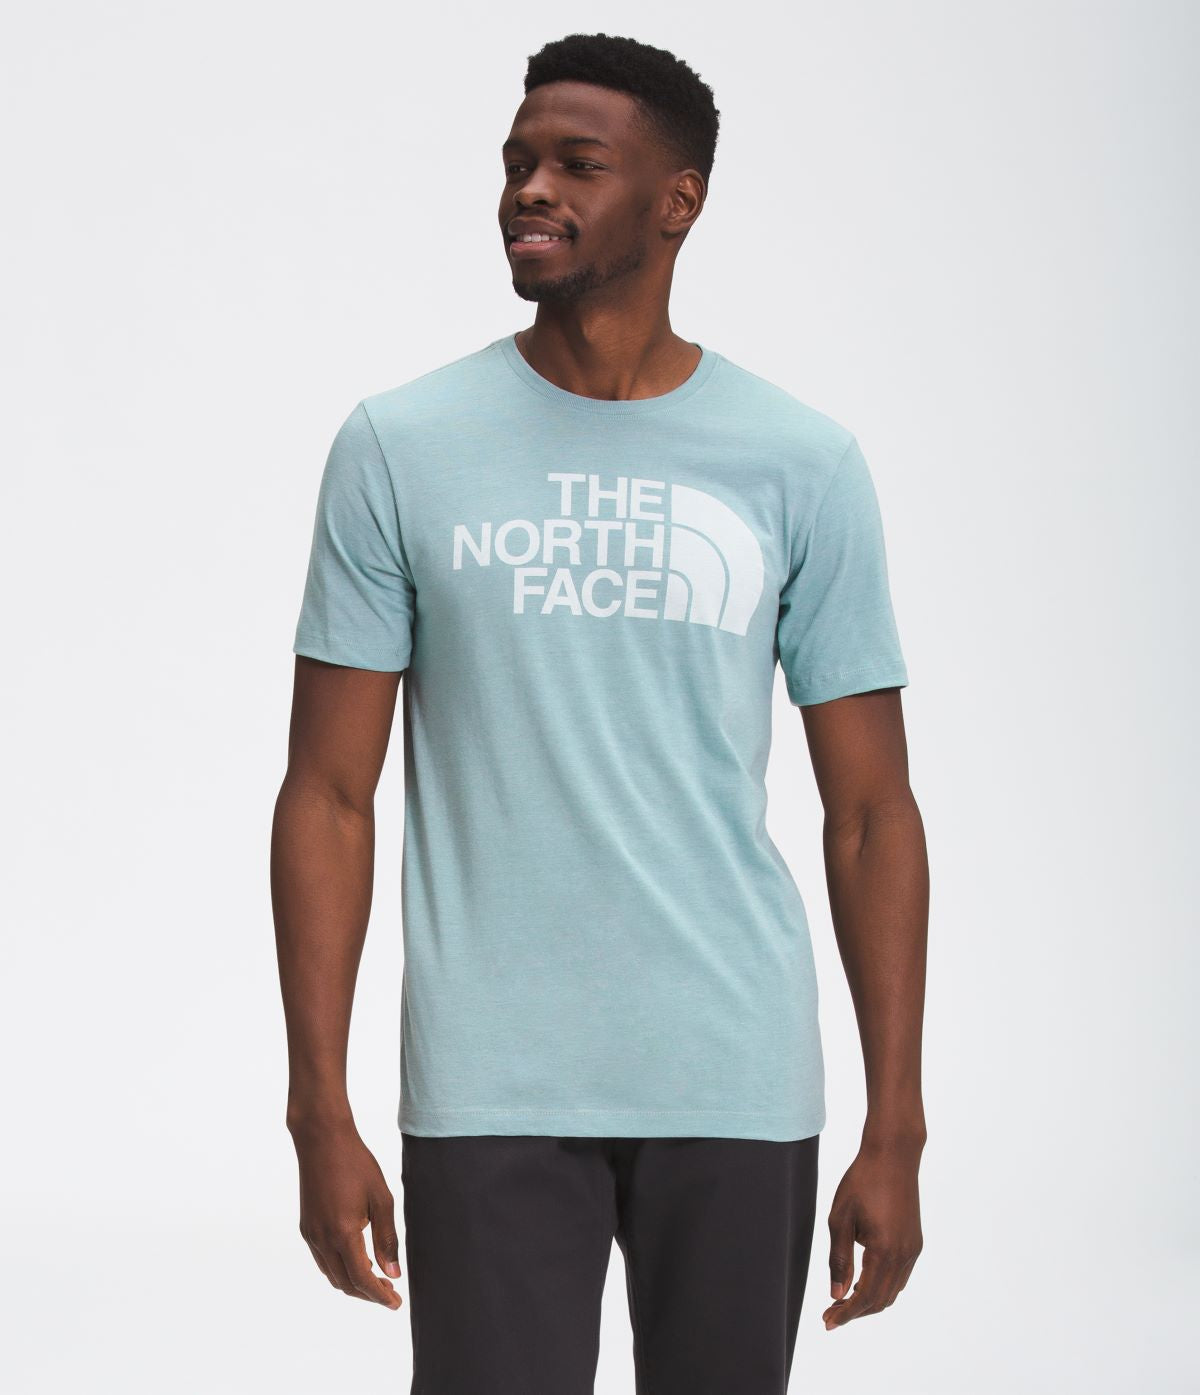 'The North Face' Men's Half Dome Triblend T-Shirt - Tourmaline Blue Heather